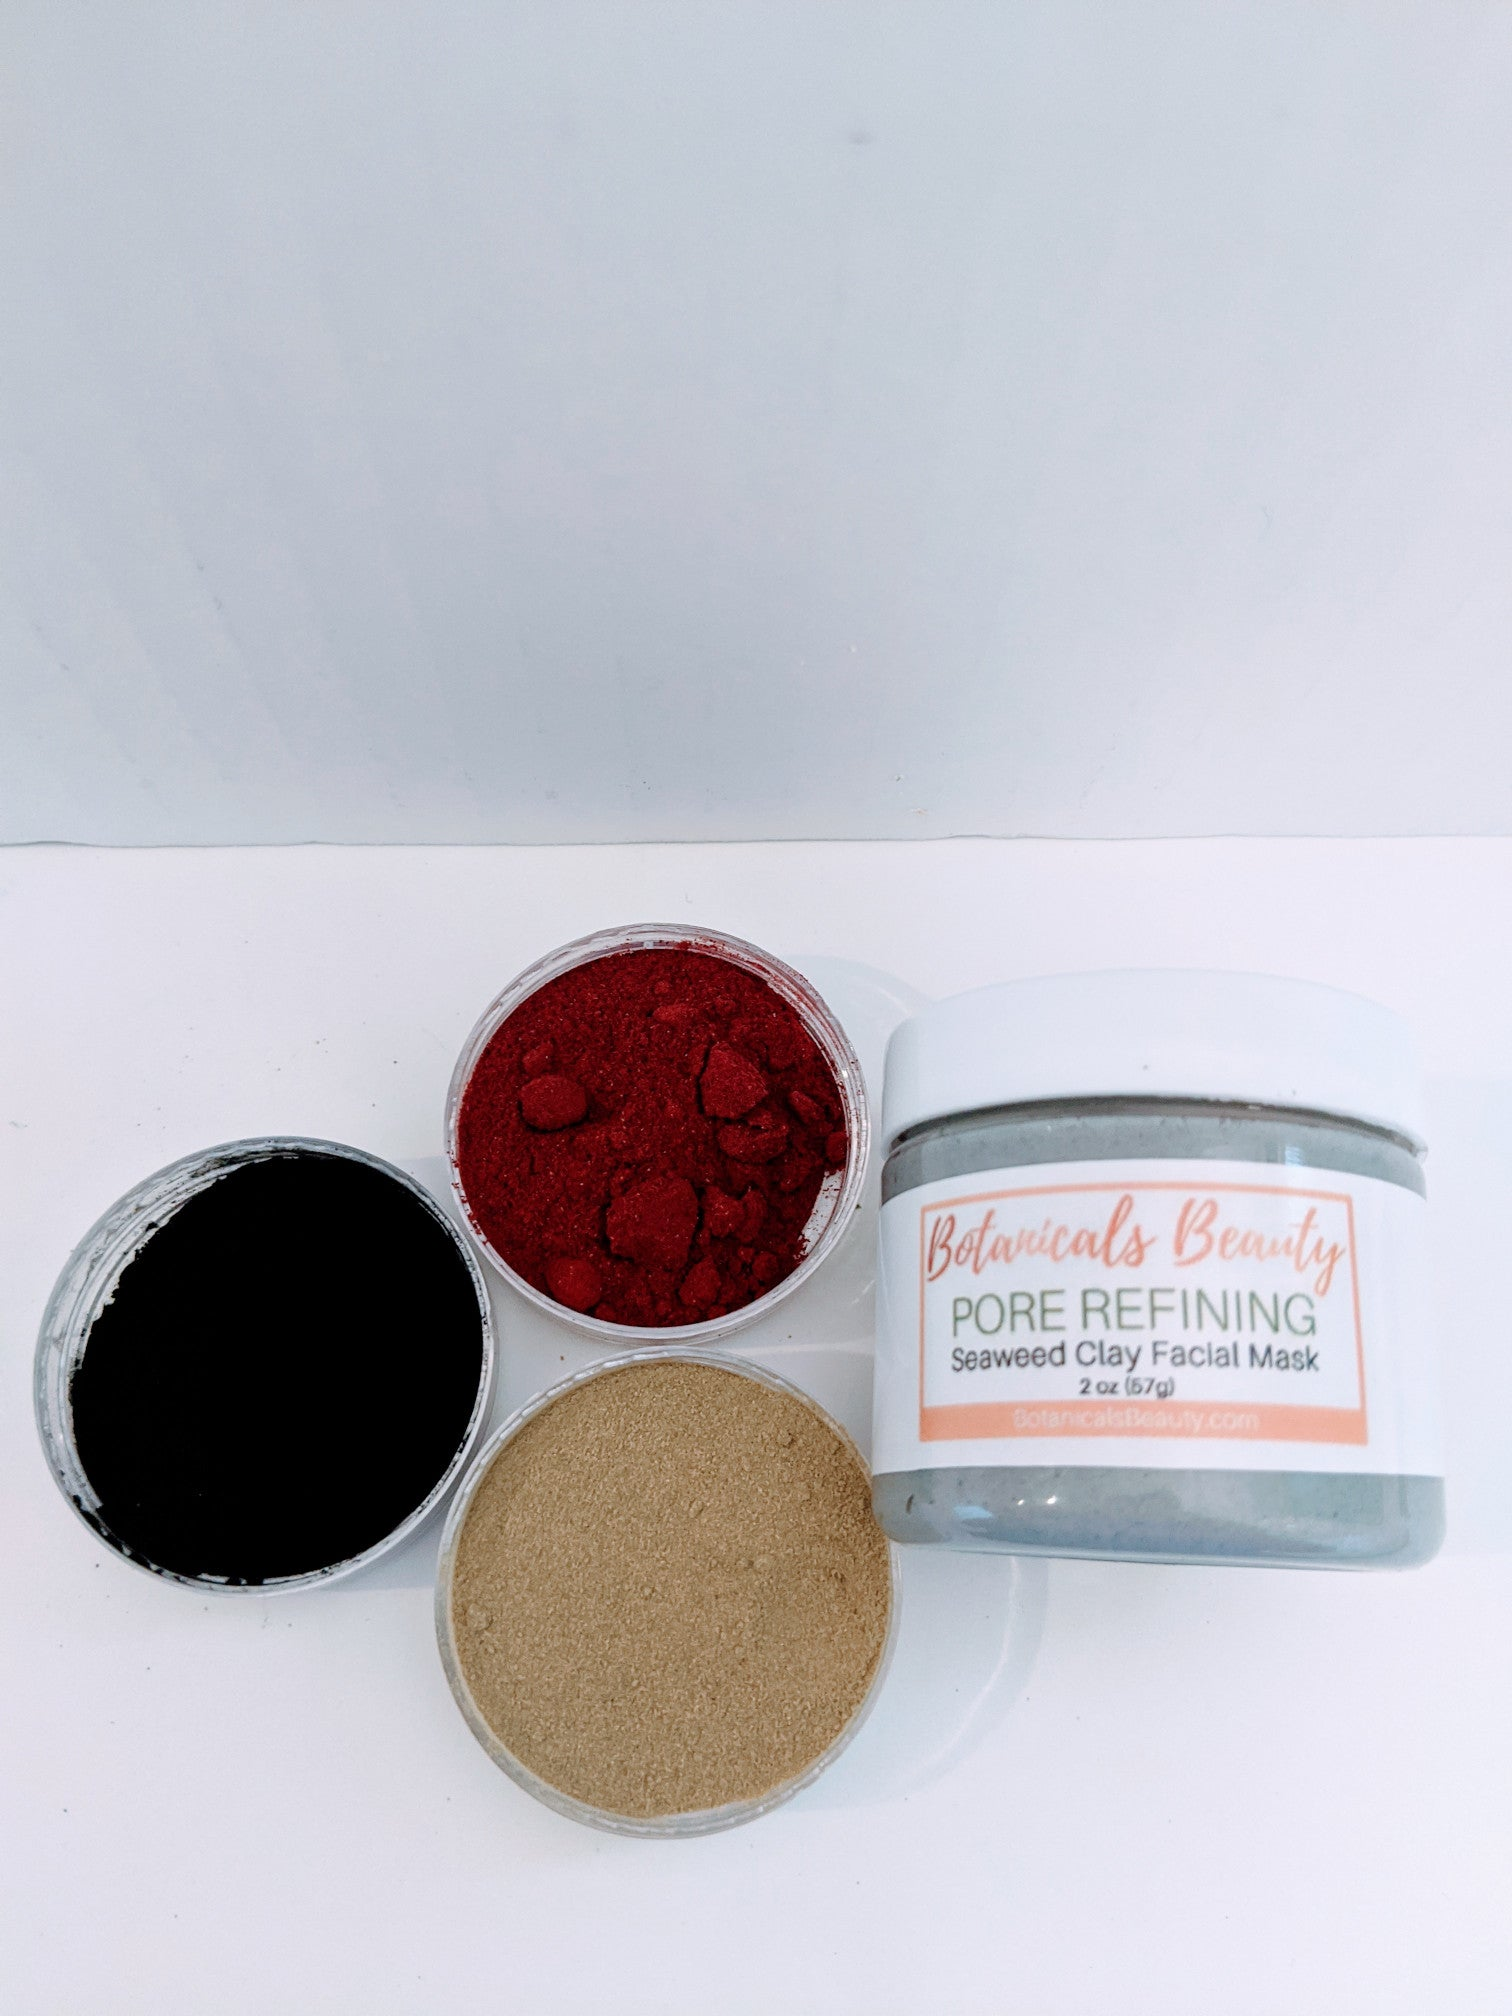 Seaweed Clay Facial Mask